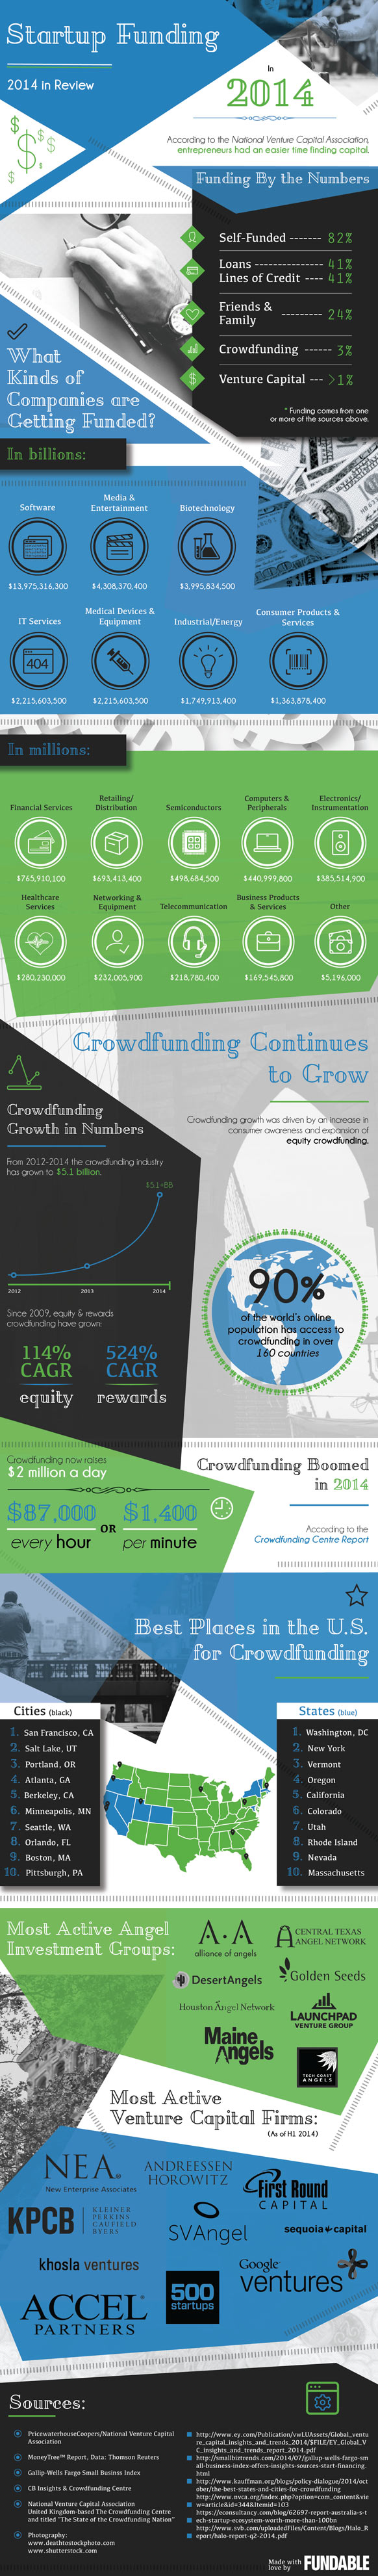 2014 Crowdfunding Infographic - Fundable.com